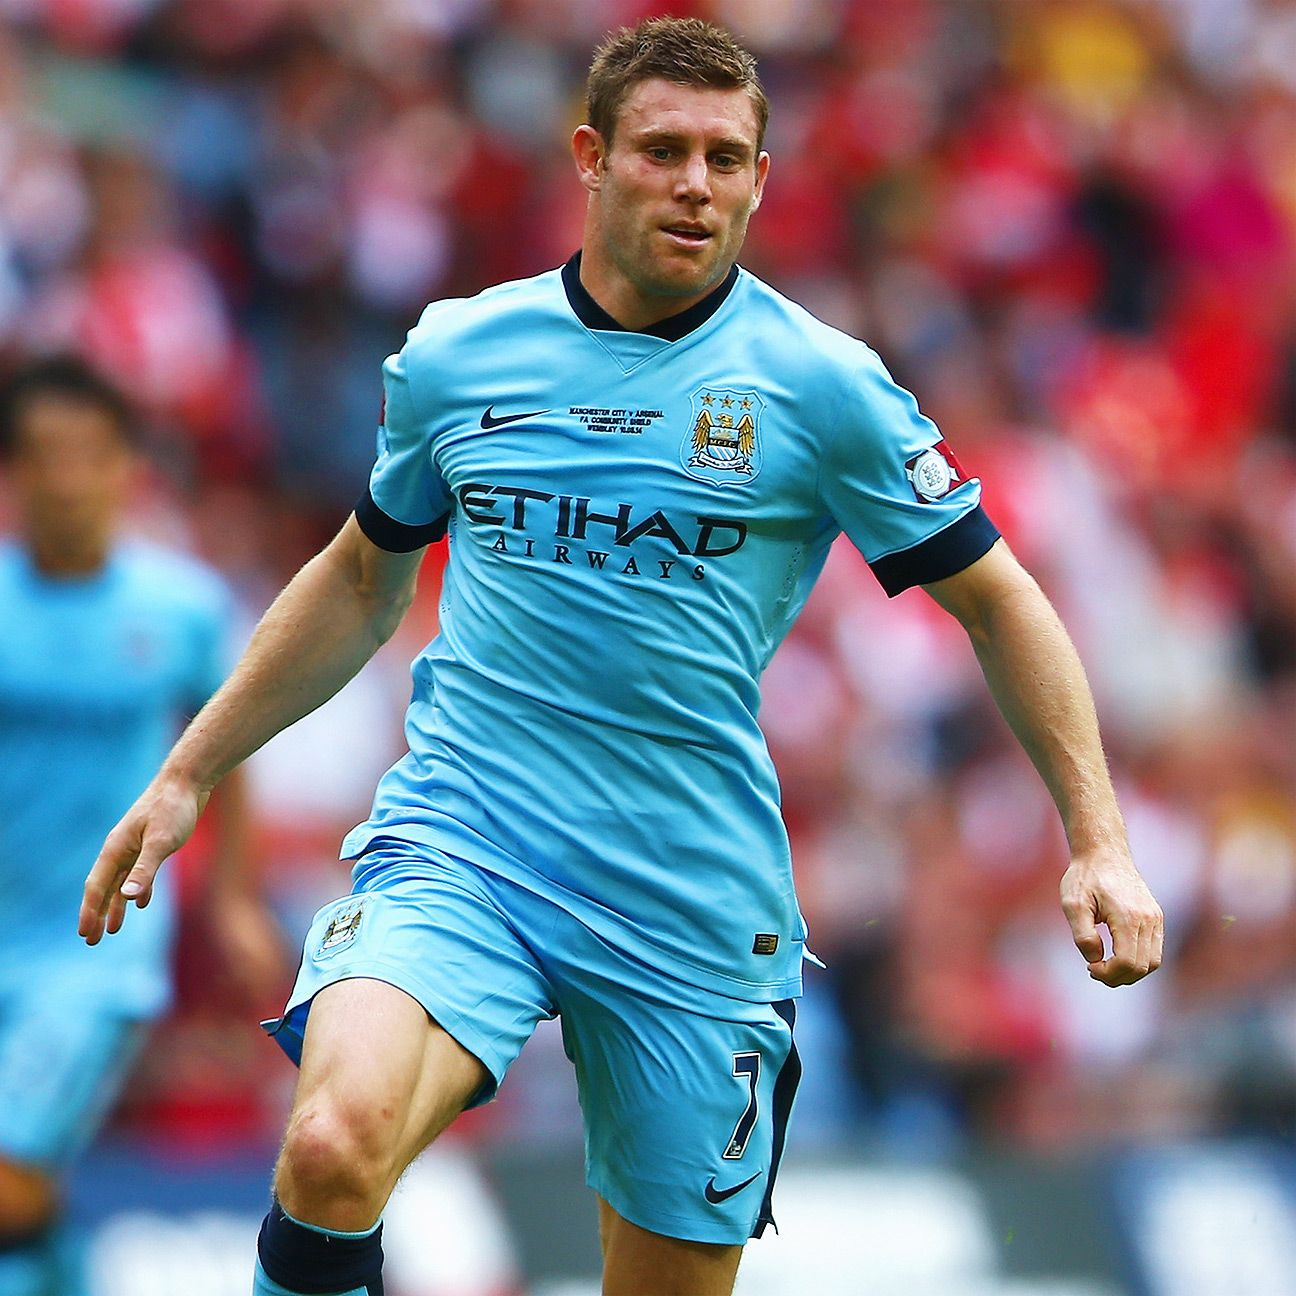 No matter the circumstances, Manchester City's James Milner always seems willing to do the dirty work.